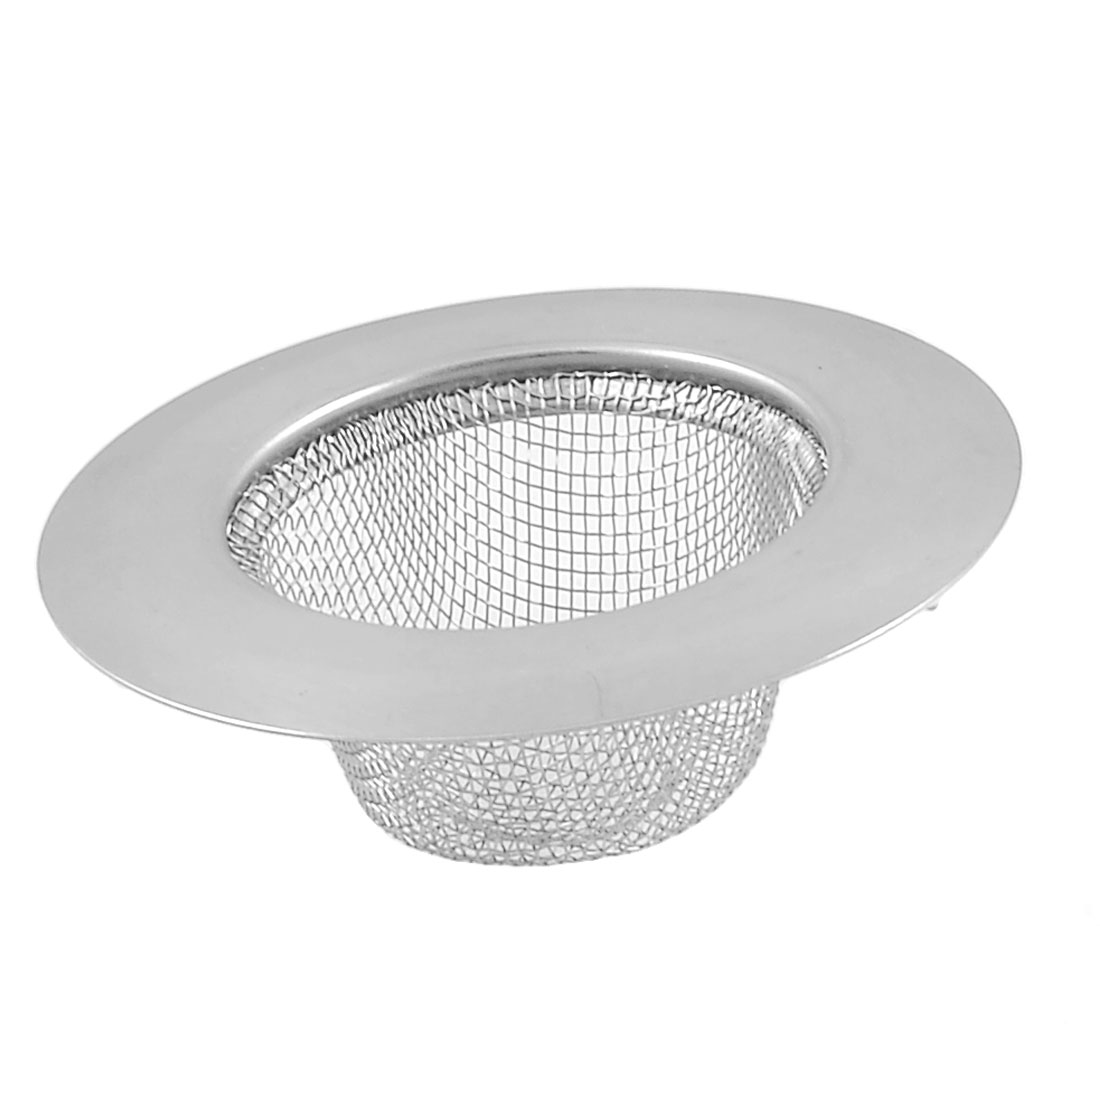 Home Kitchen Silver Tone Stainless Steel 7cm Dia Basin Strainer